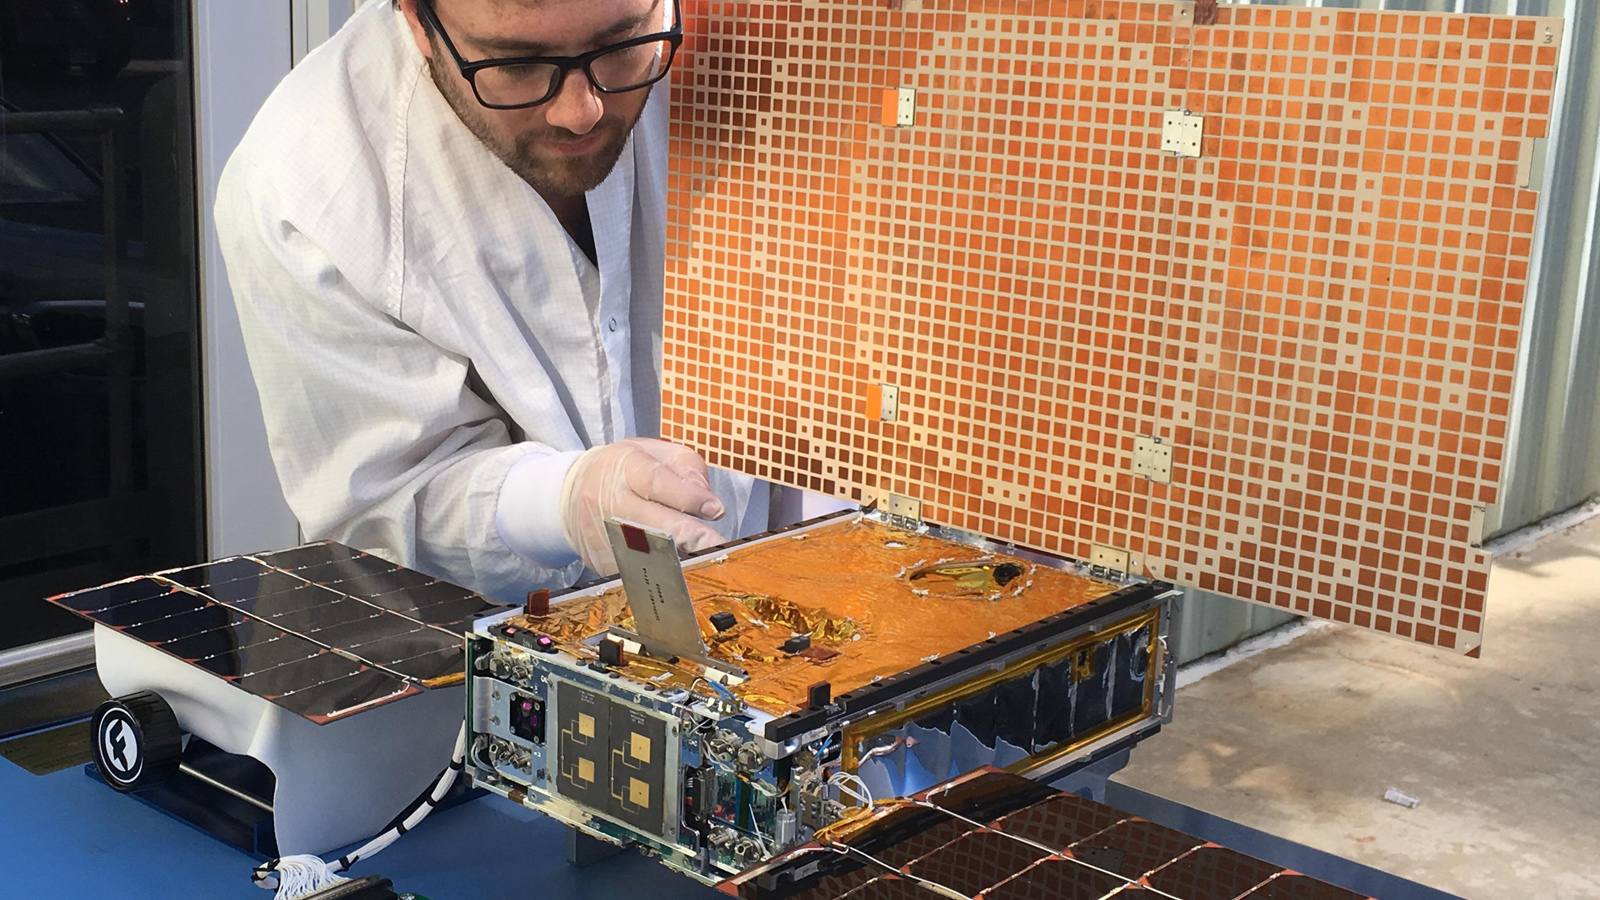 slide 4 - This is an image of a NASA engineer testing the solar arrays on one of the Mars Cube One, or MarCO, spacecraft.